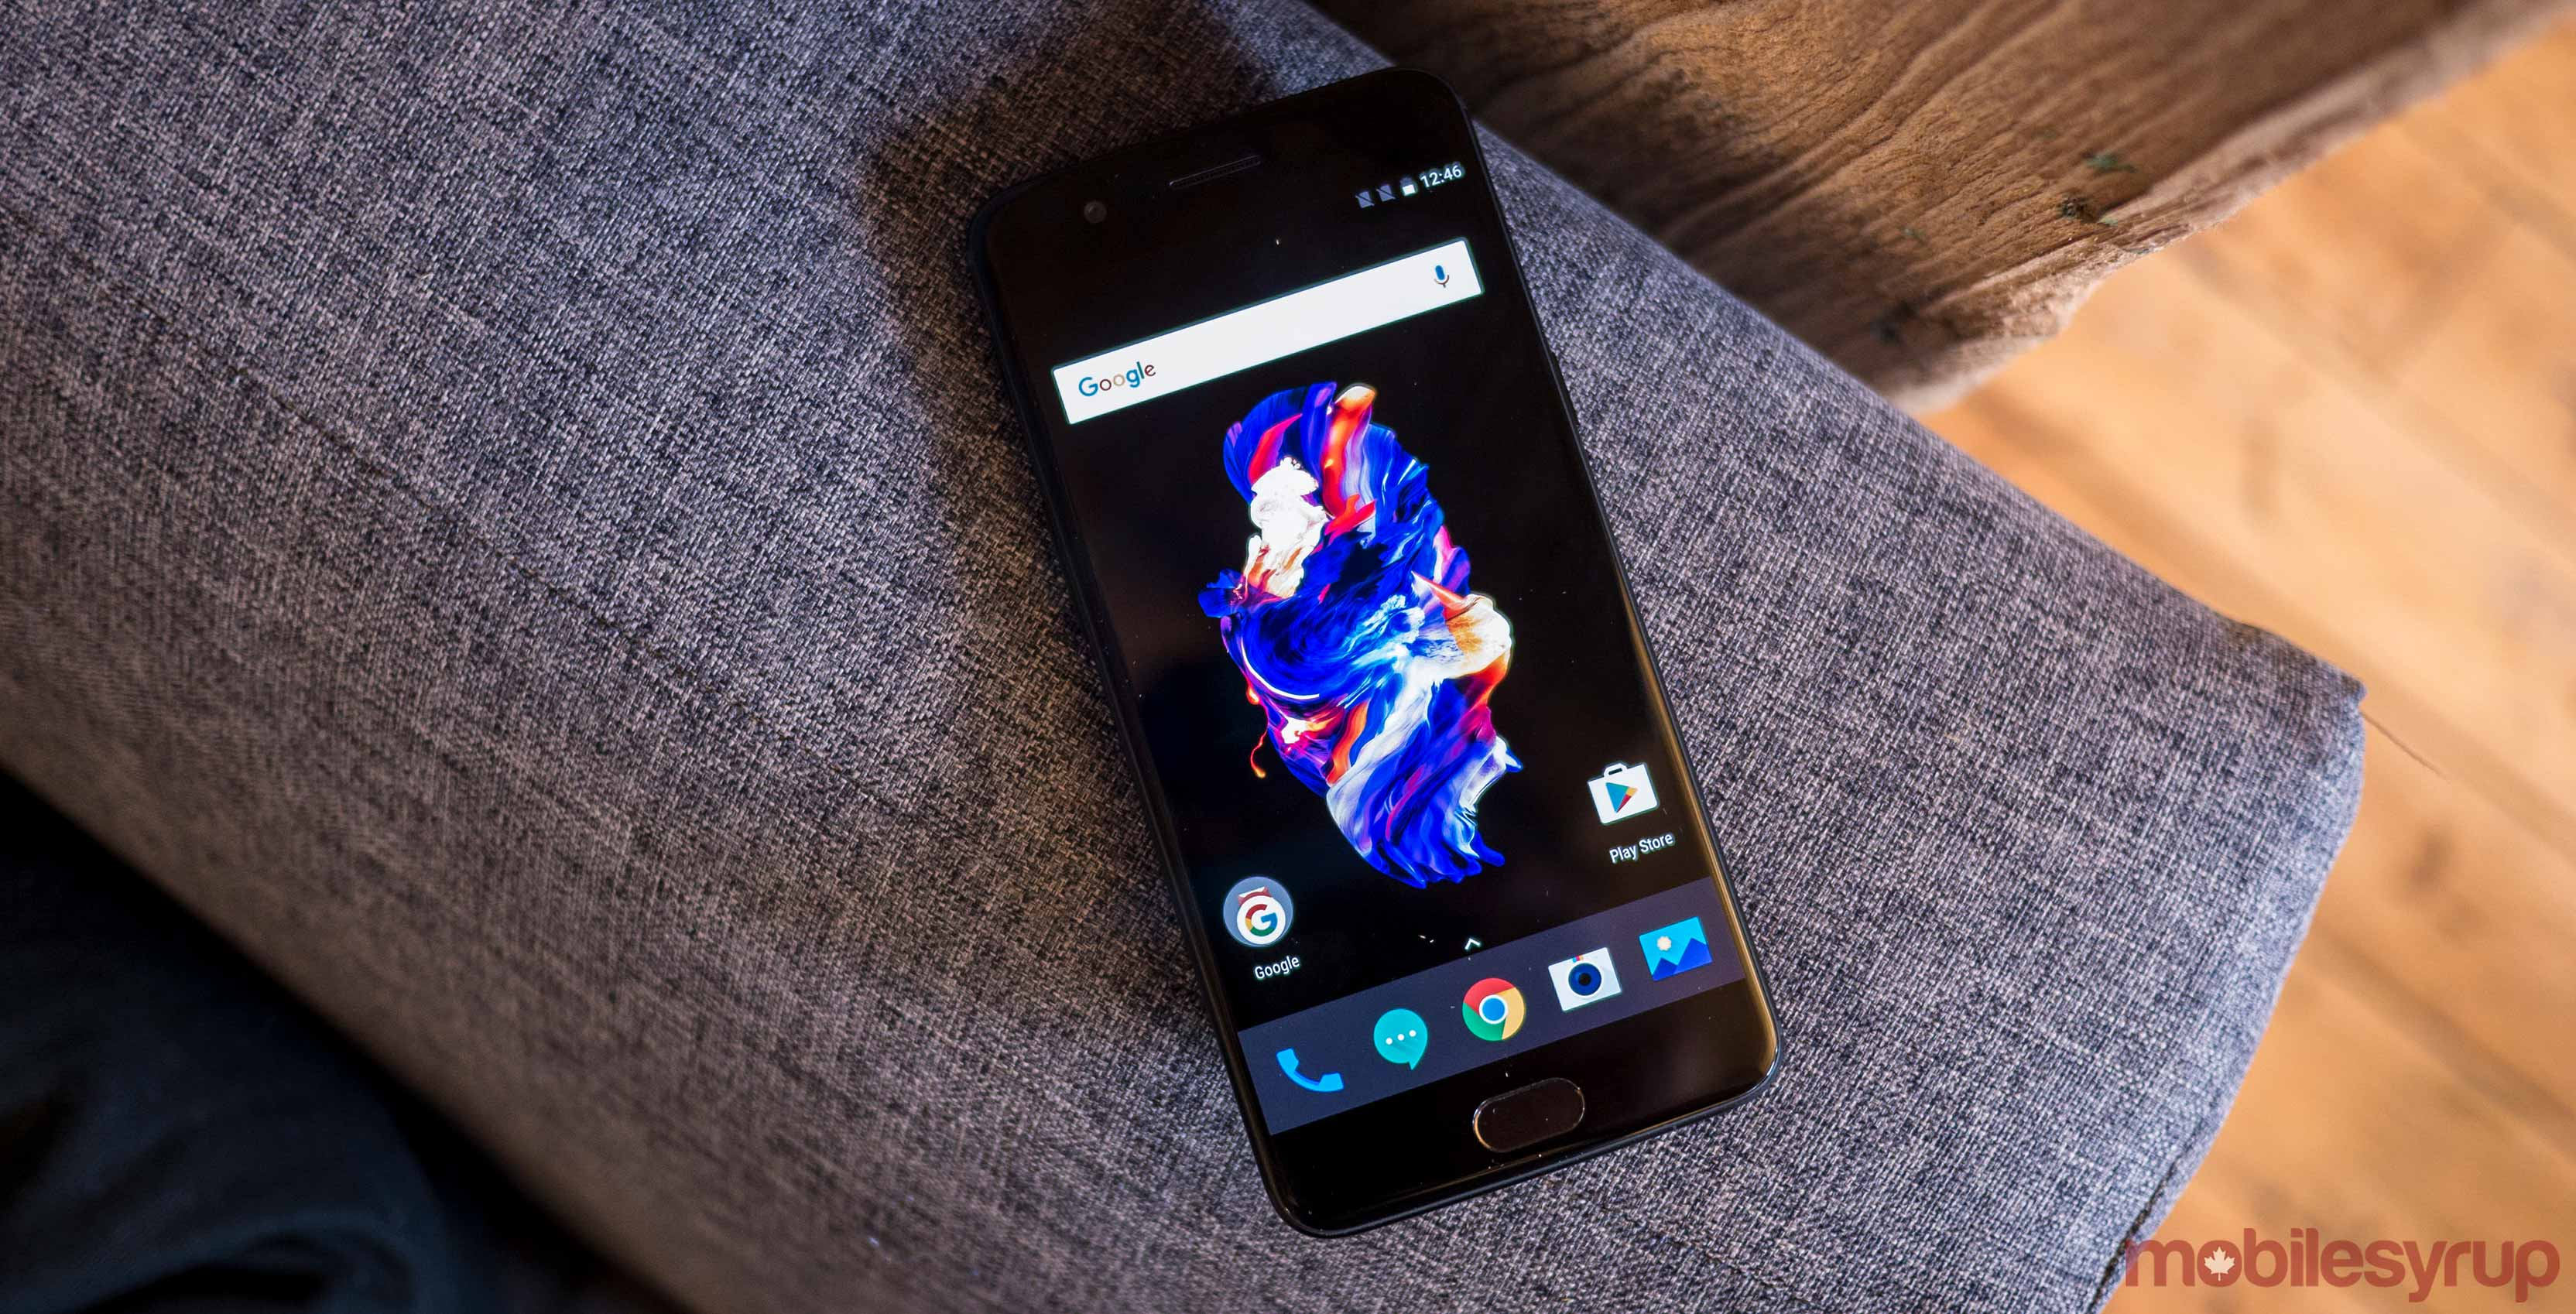 OnePlus 5 on the couch